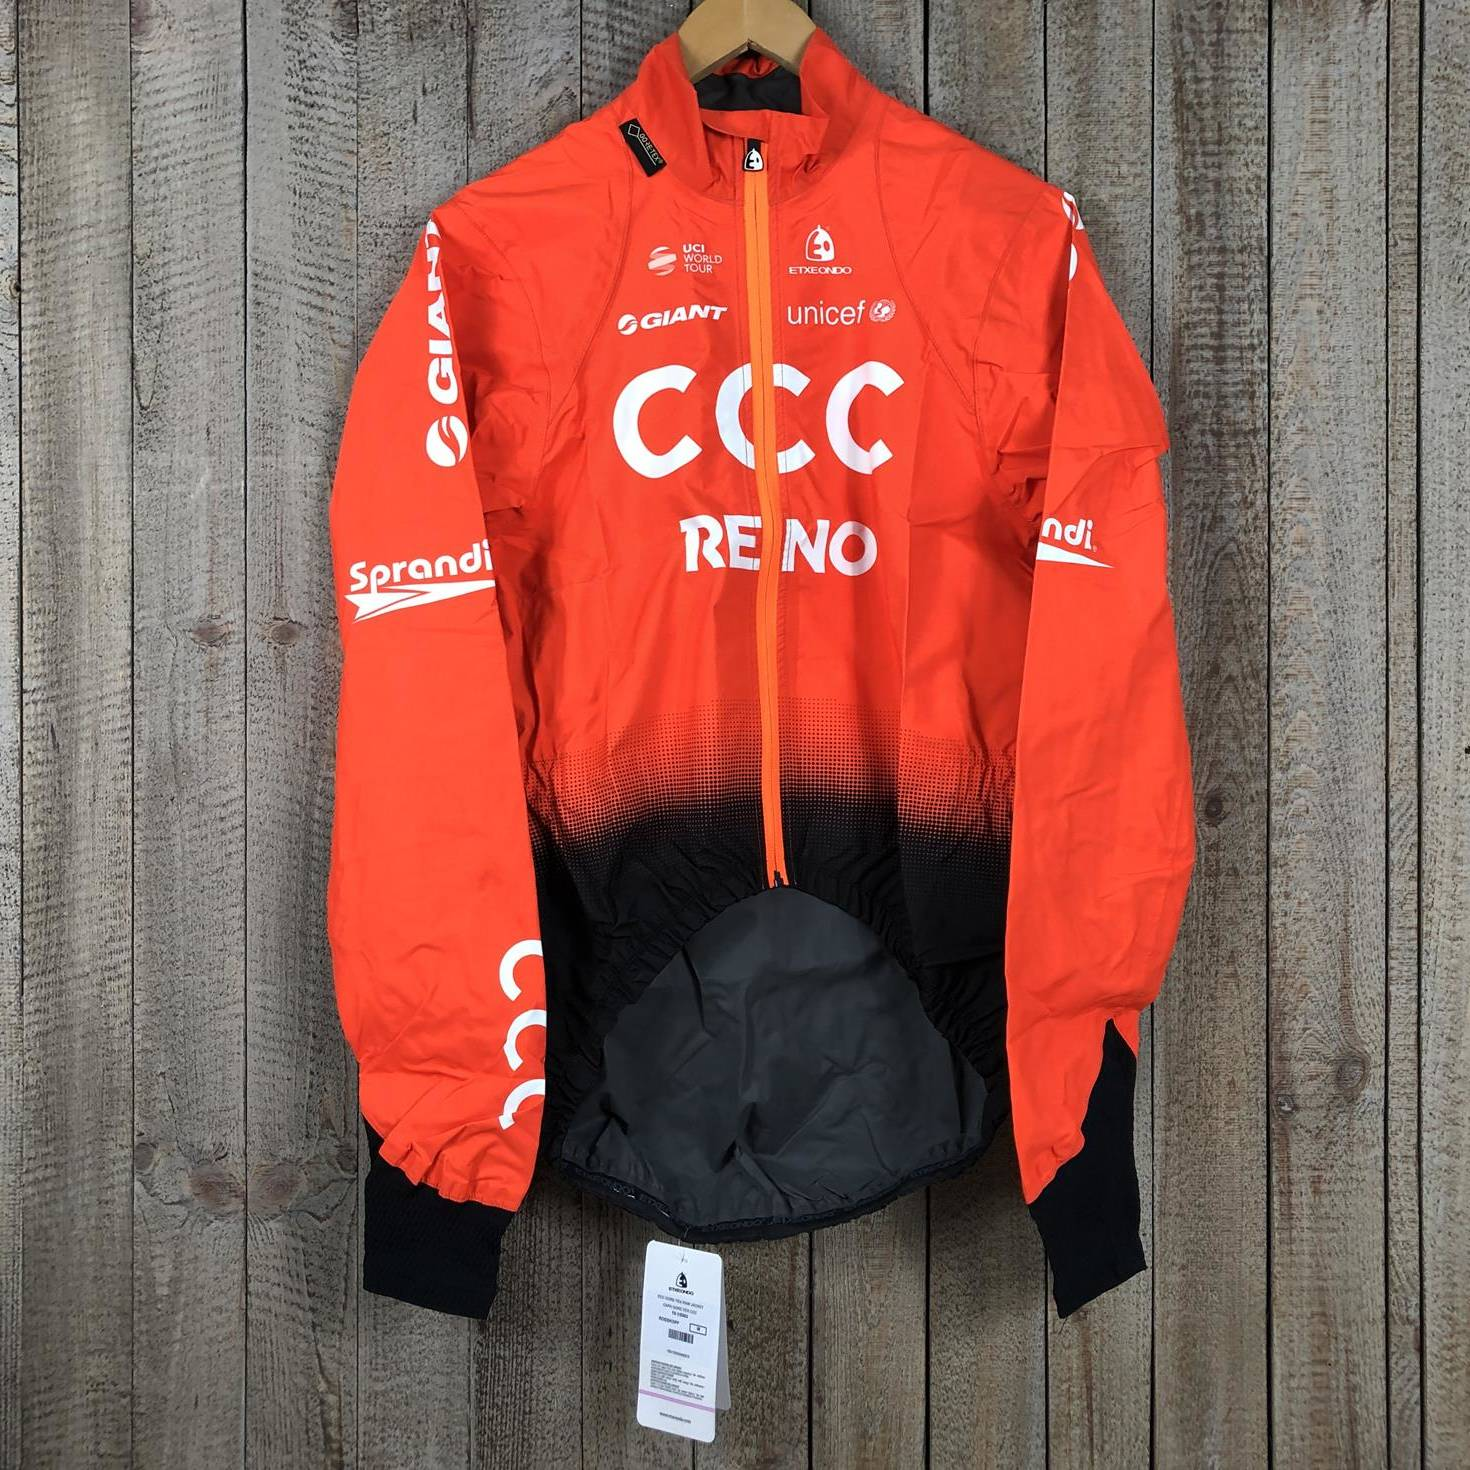 Gore-Tex Rain Jacket - CCC Team 00003406 (1)